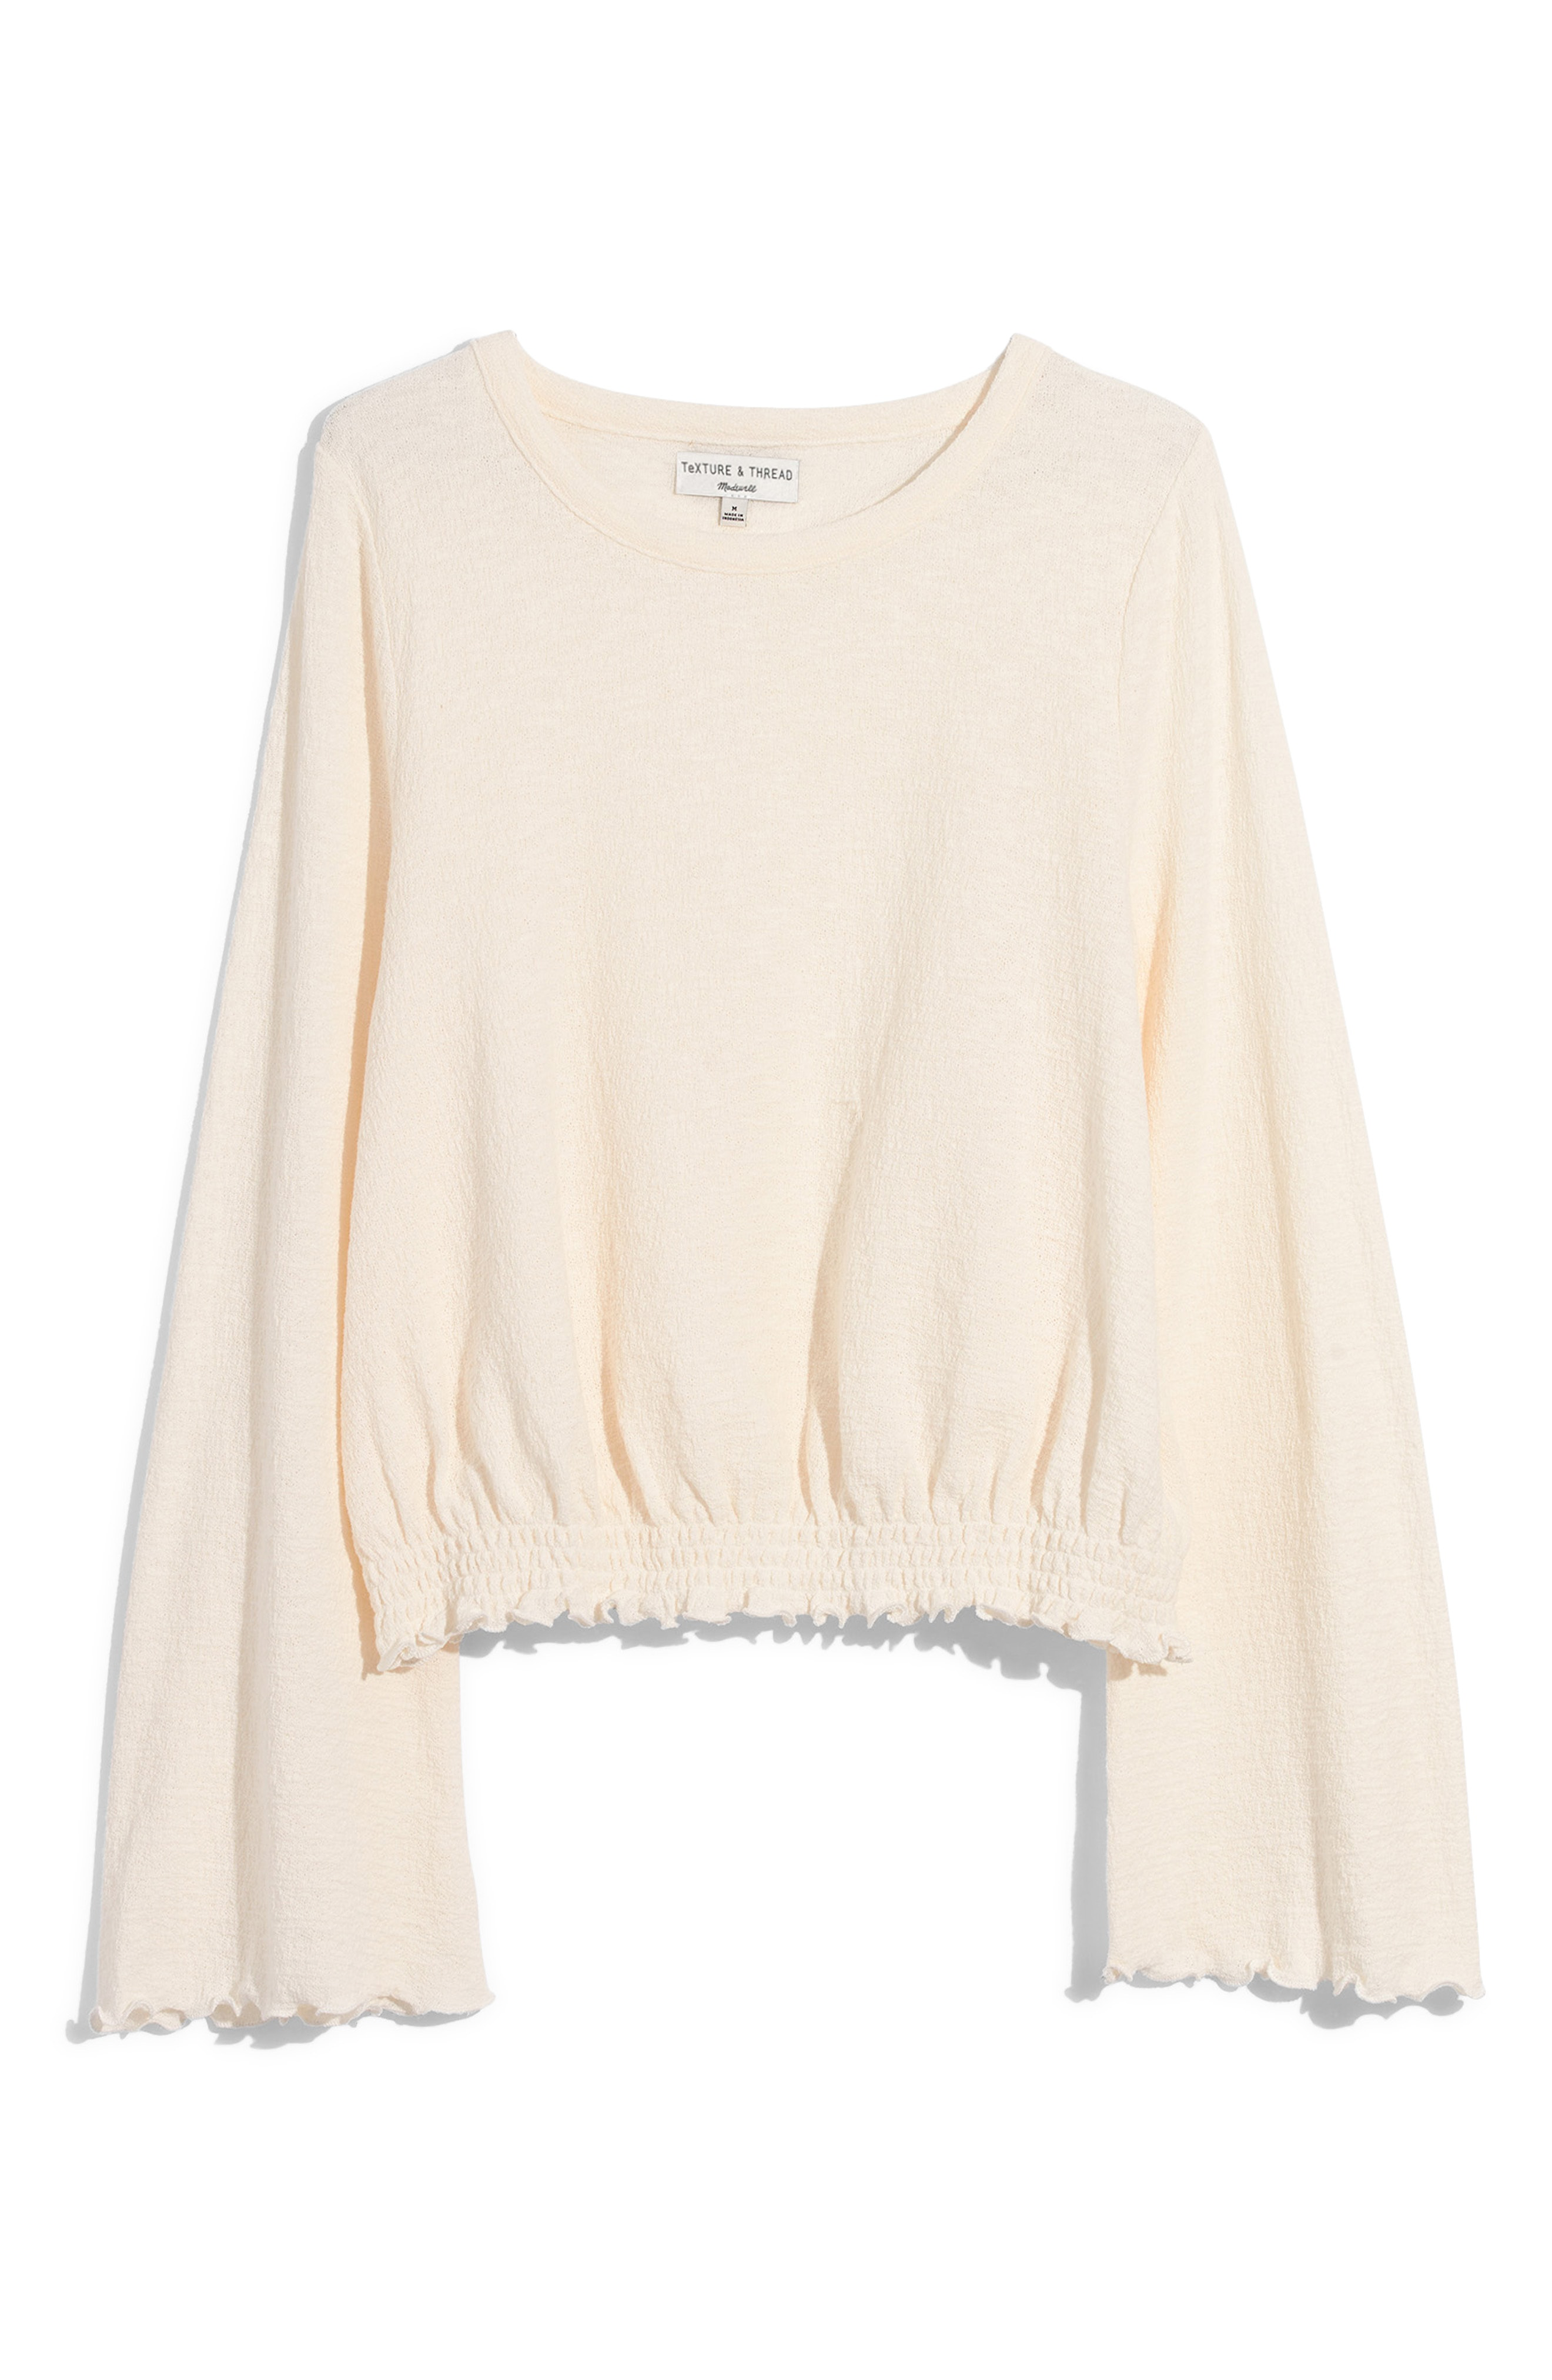 4043cfb423 Madewell Texture   Thread Smocked Bell Sleeve Top In Bright Ivory ...